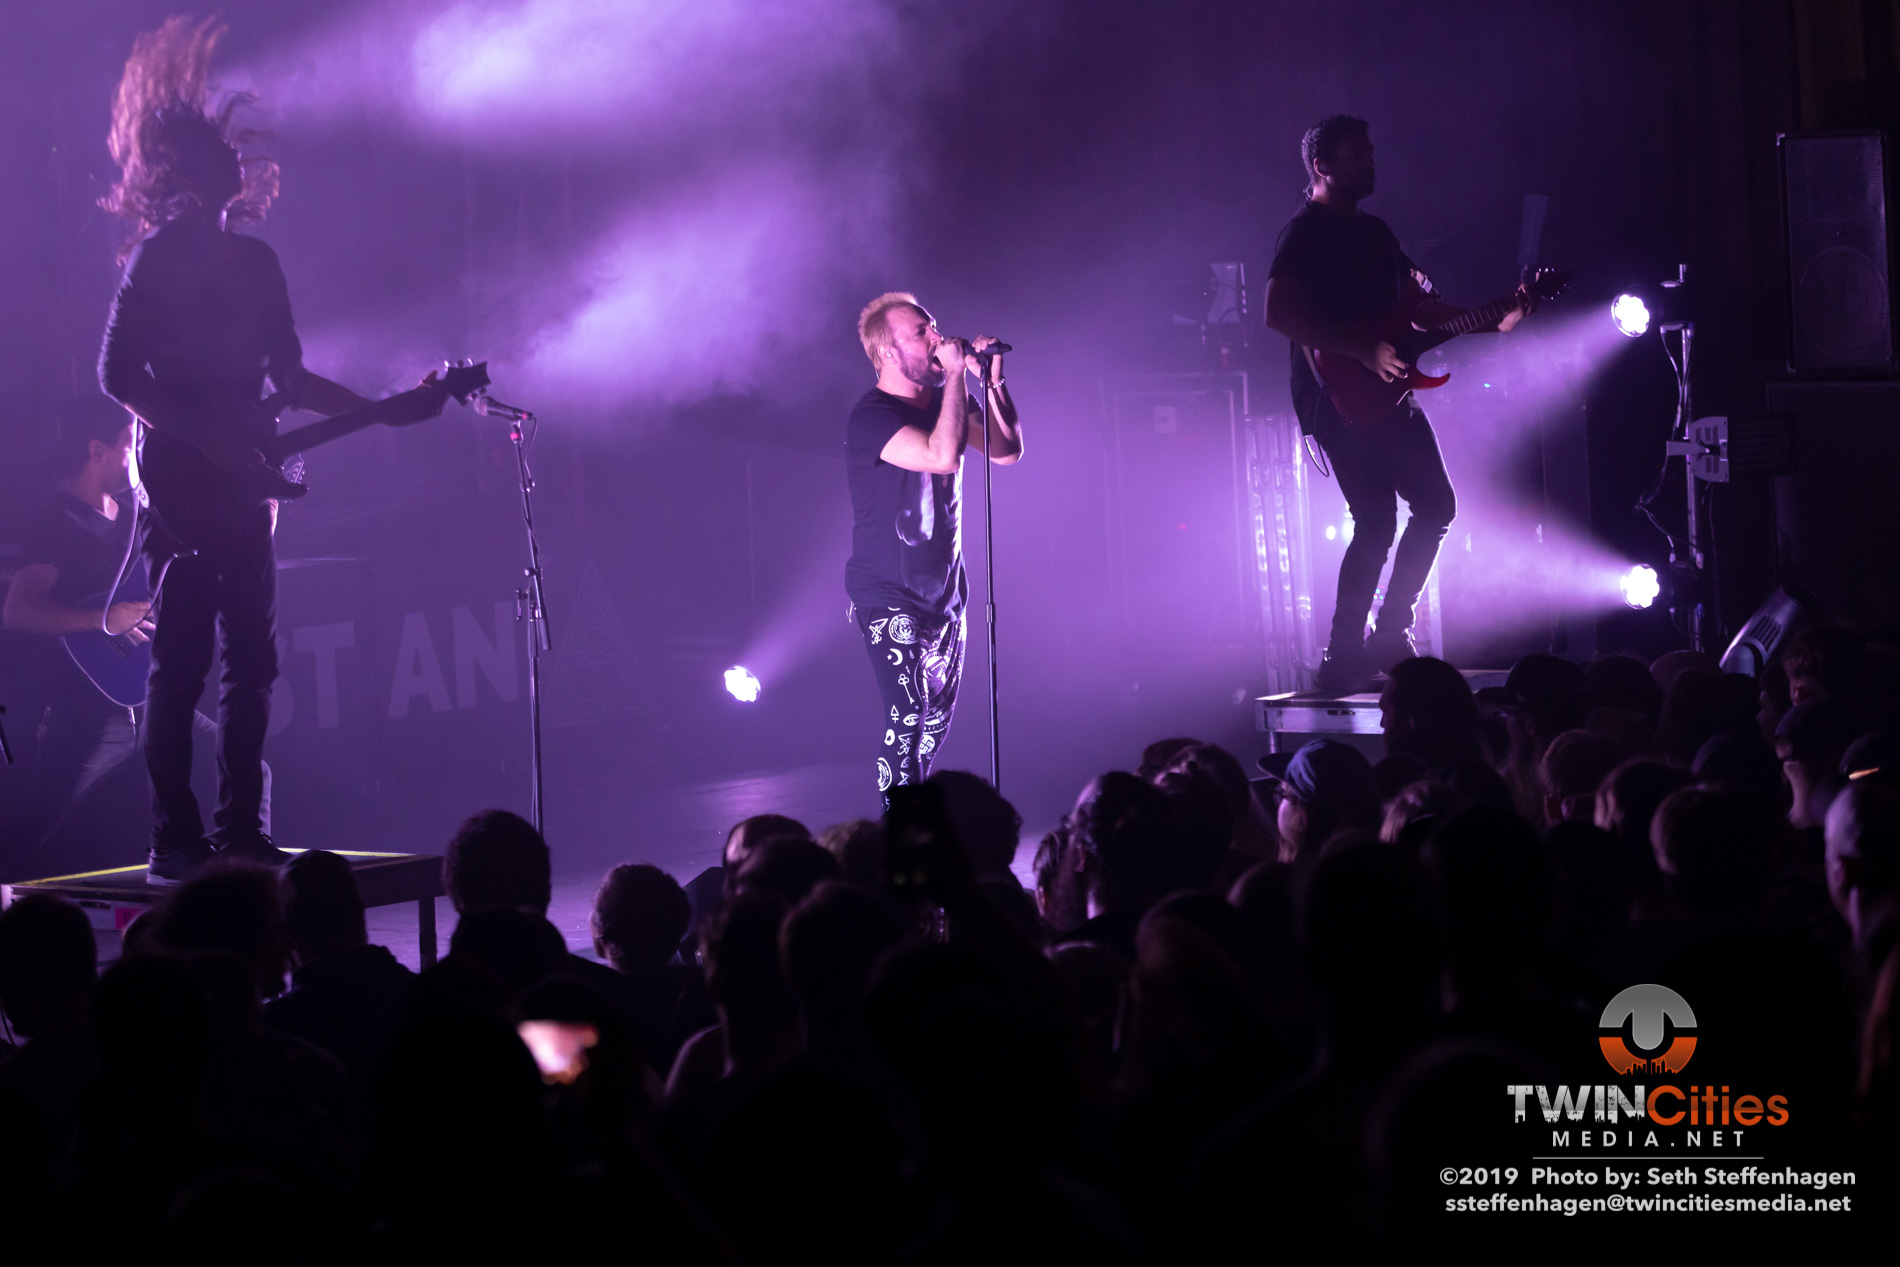 September 18, 2019 - Minneapolis, Minnesota, United States - Periphery live in concert at the Skyway Theatre along with Veil Of Maya and Covet as the openers.(Photo by Seth Steffenhagen/Steffenhagen Photography)